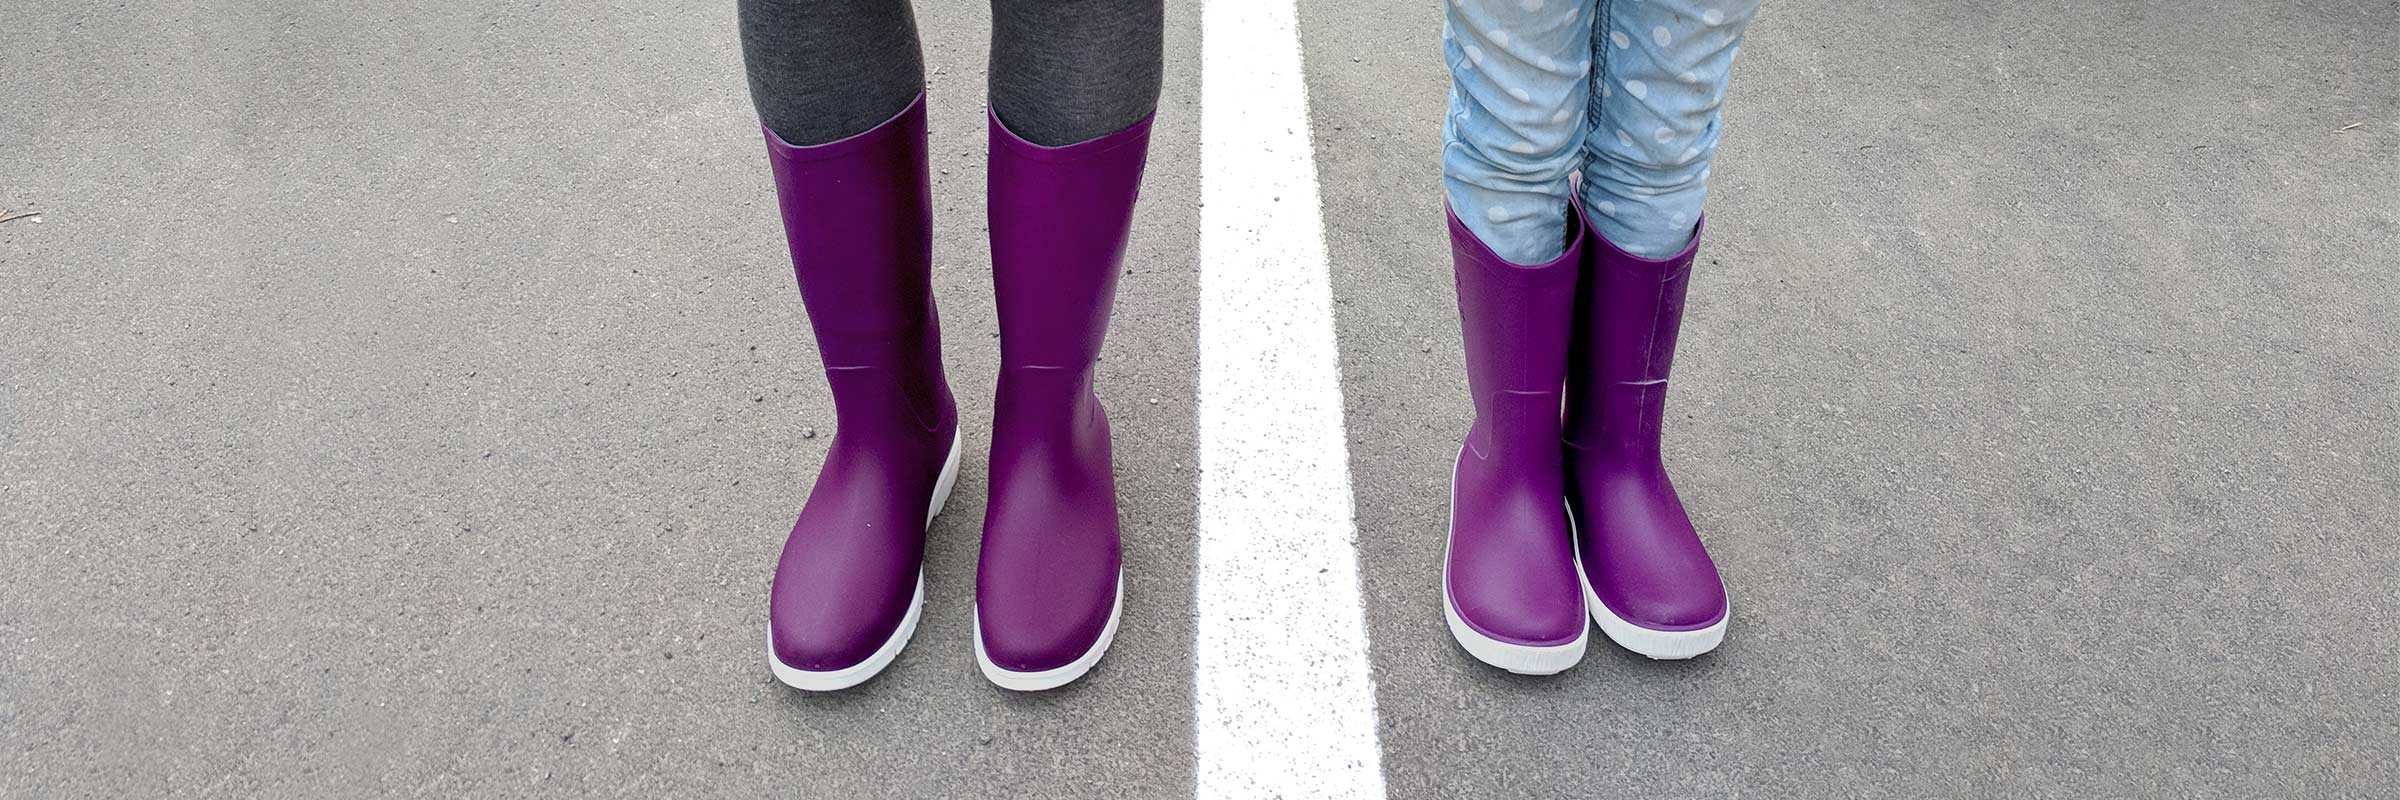 Kamik Jessie and Riptides Boots Reviewed